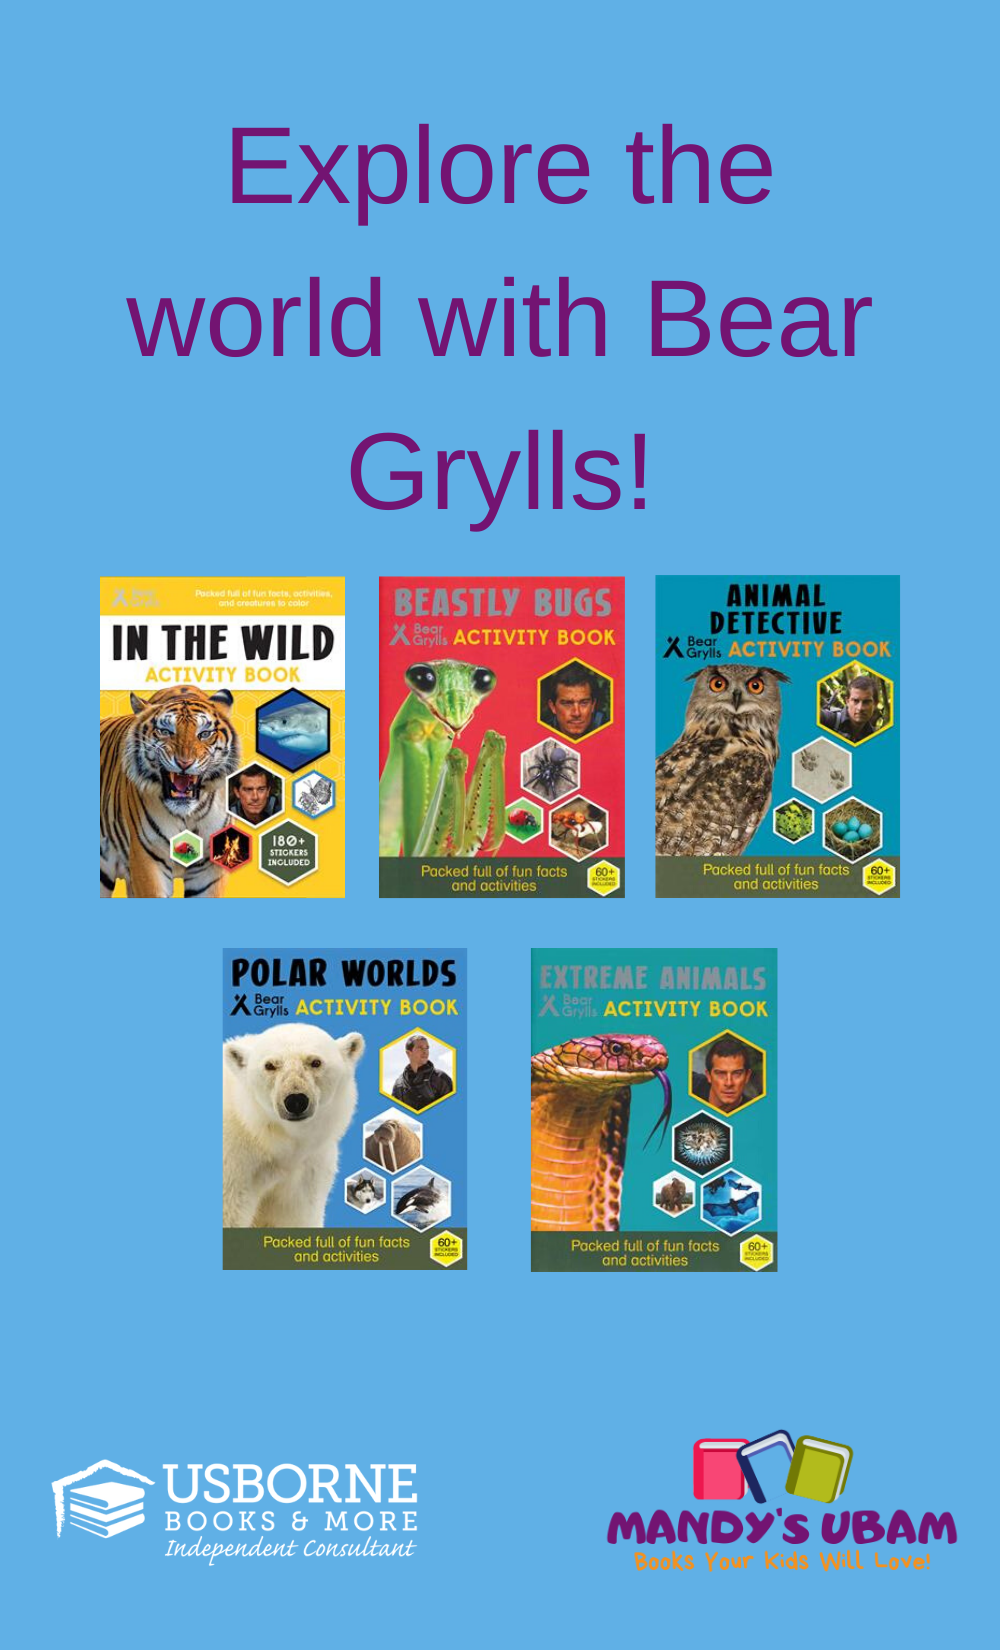 Explore The World With Bear Grylls In 2020 Book Activities Books Usborne Books